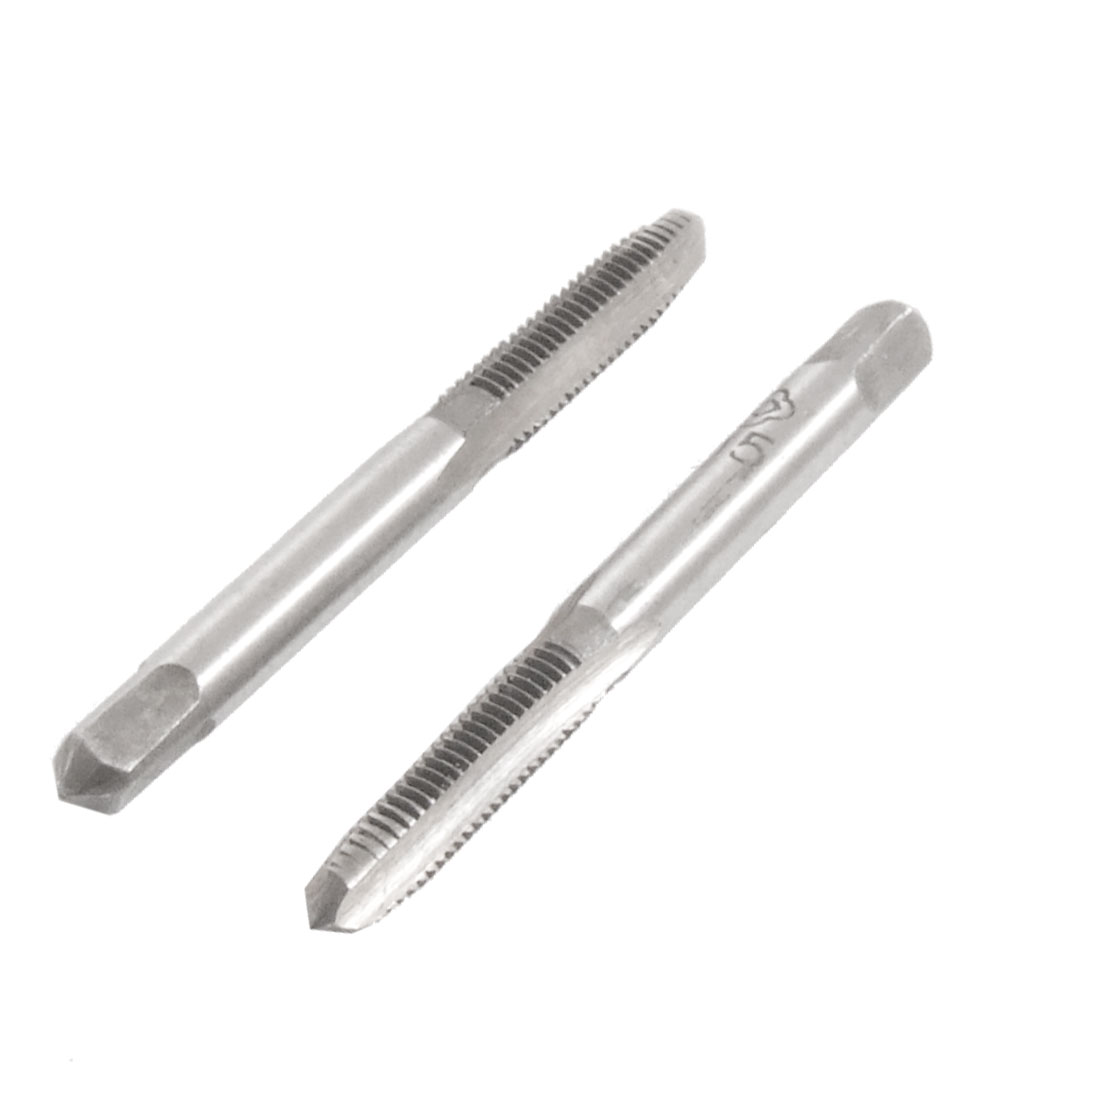 2 Pcs Square Head HSS M5 3 Flutes Hand Screw Thread Metric Taps